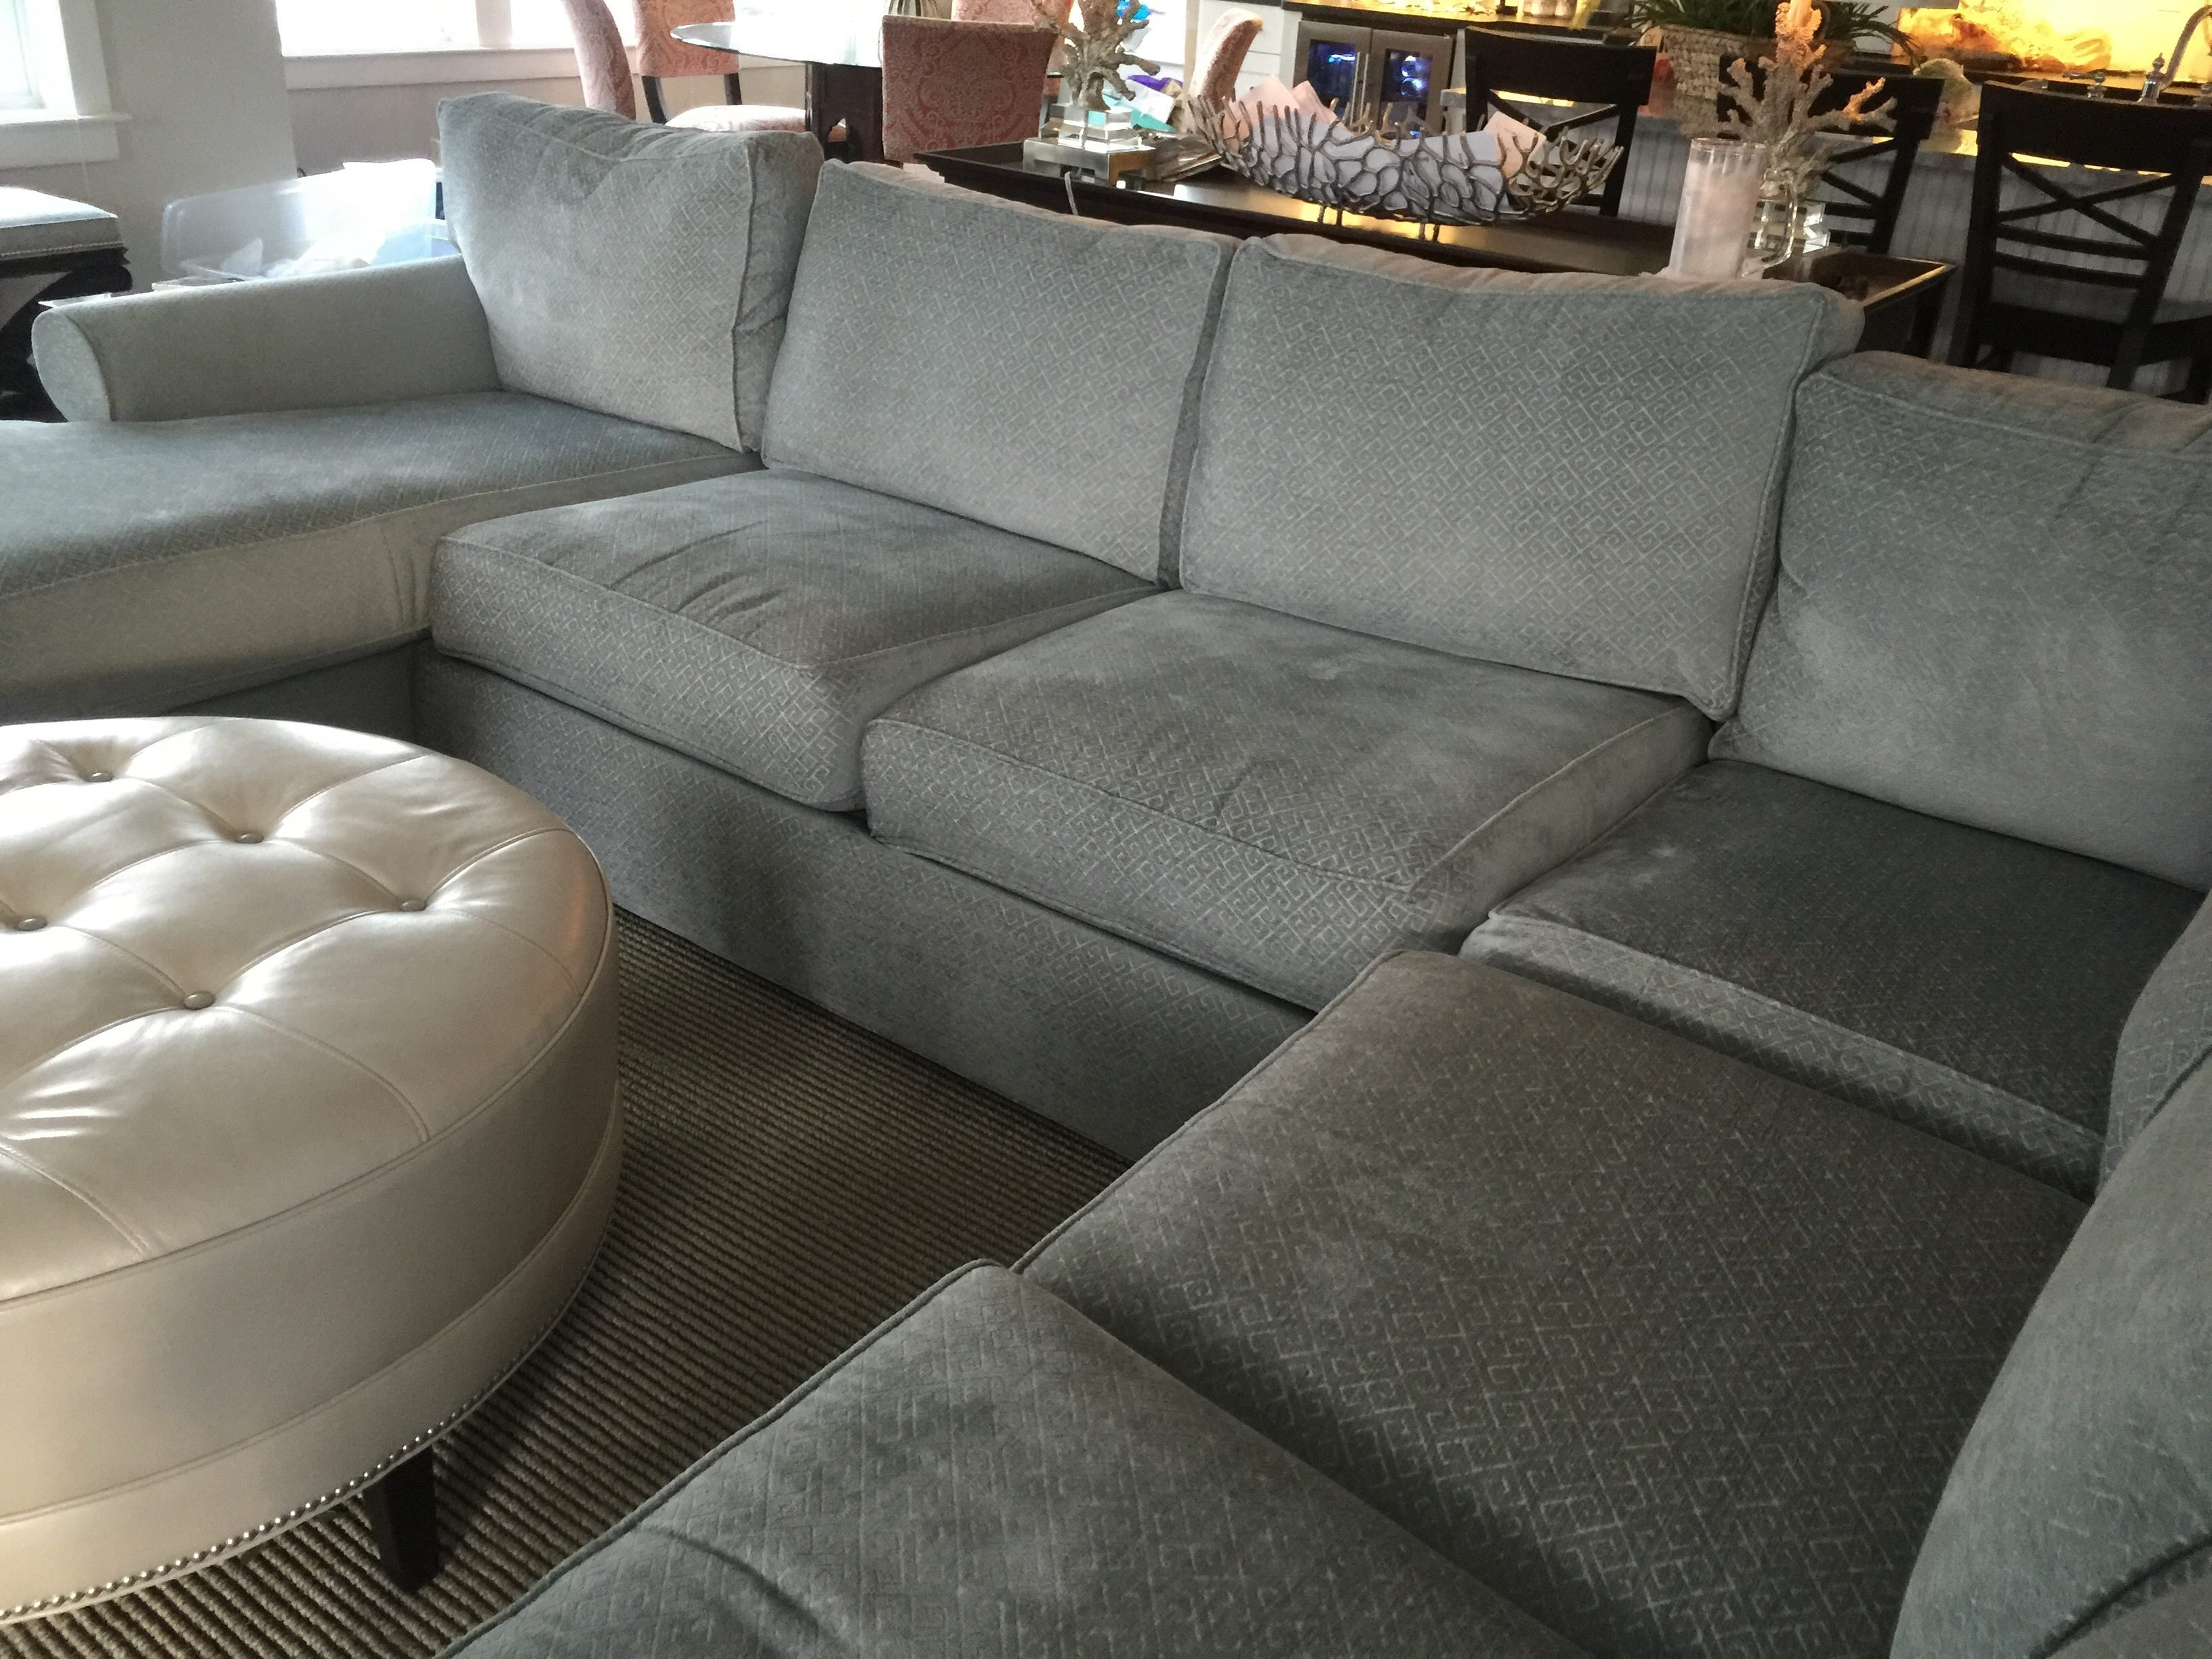 Decor Grey Sectional Sofa Craigslist West Palm Beach Furniture Regarding Craigslist Sectional Sofa (#4 of 12)